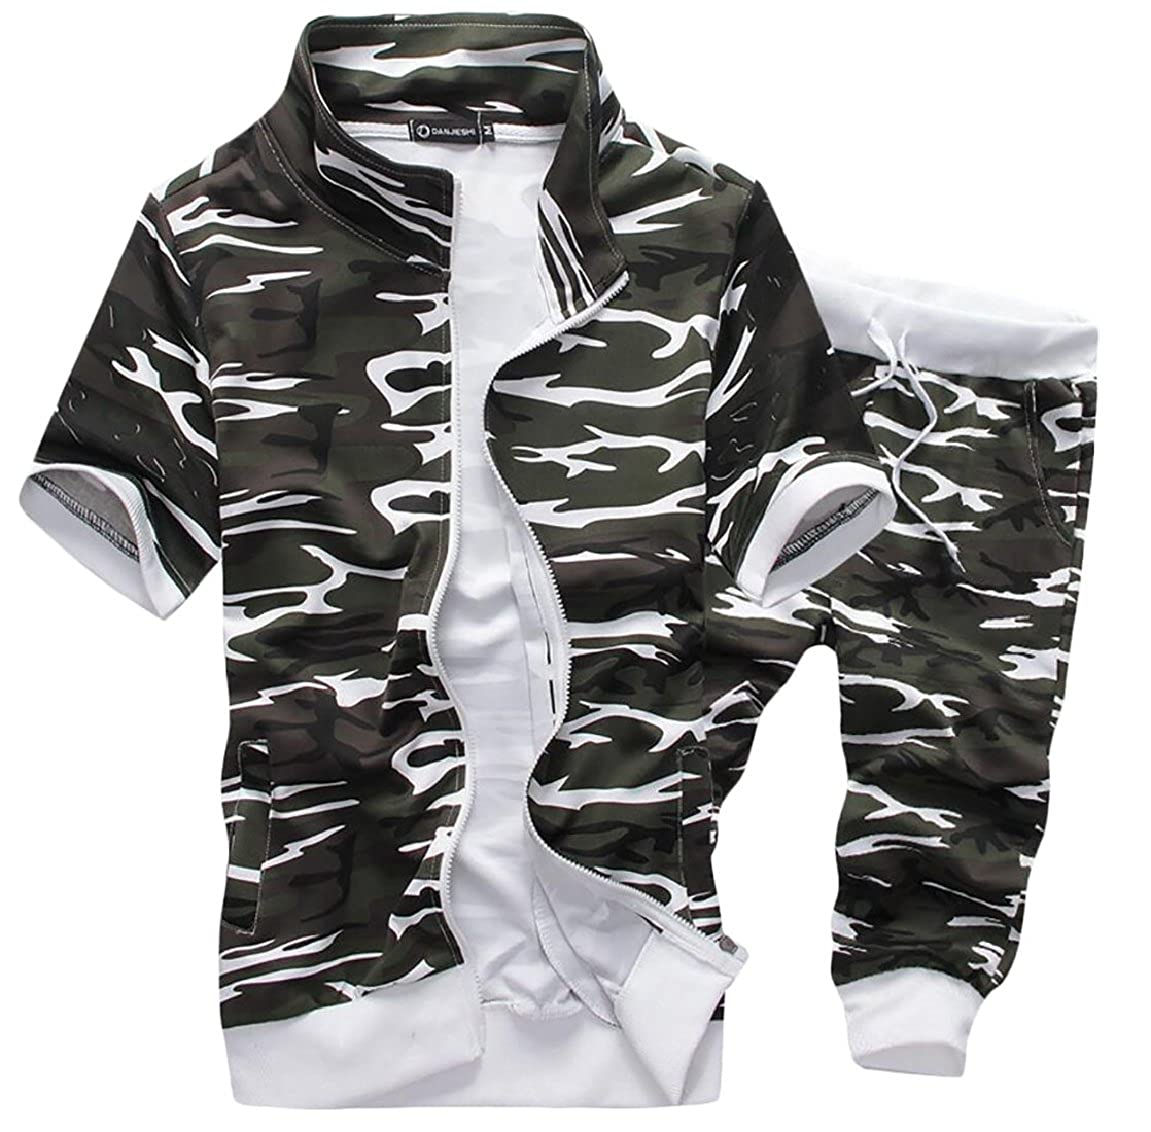 pujingge-CA Men's Camouflage Two Piece Sets Short Sleeve Tracksuit Suit